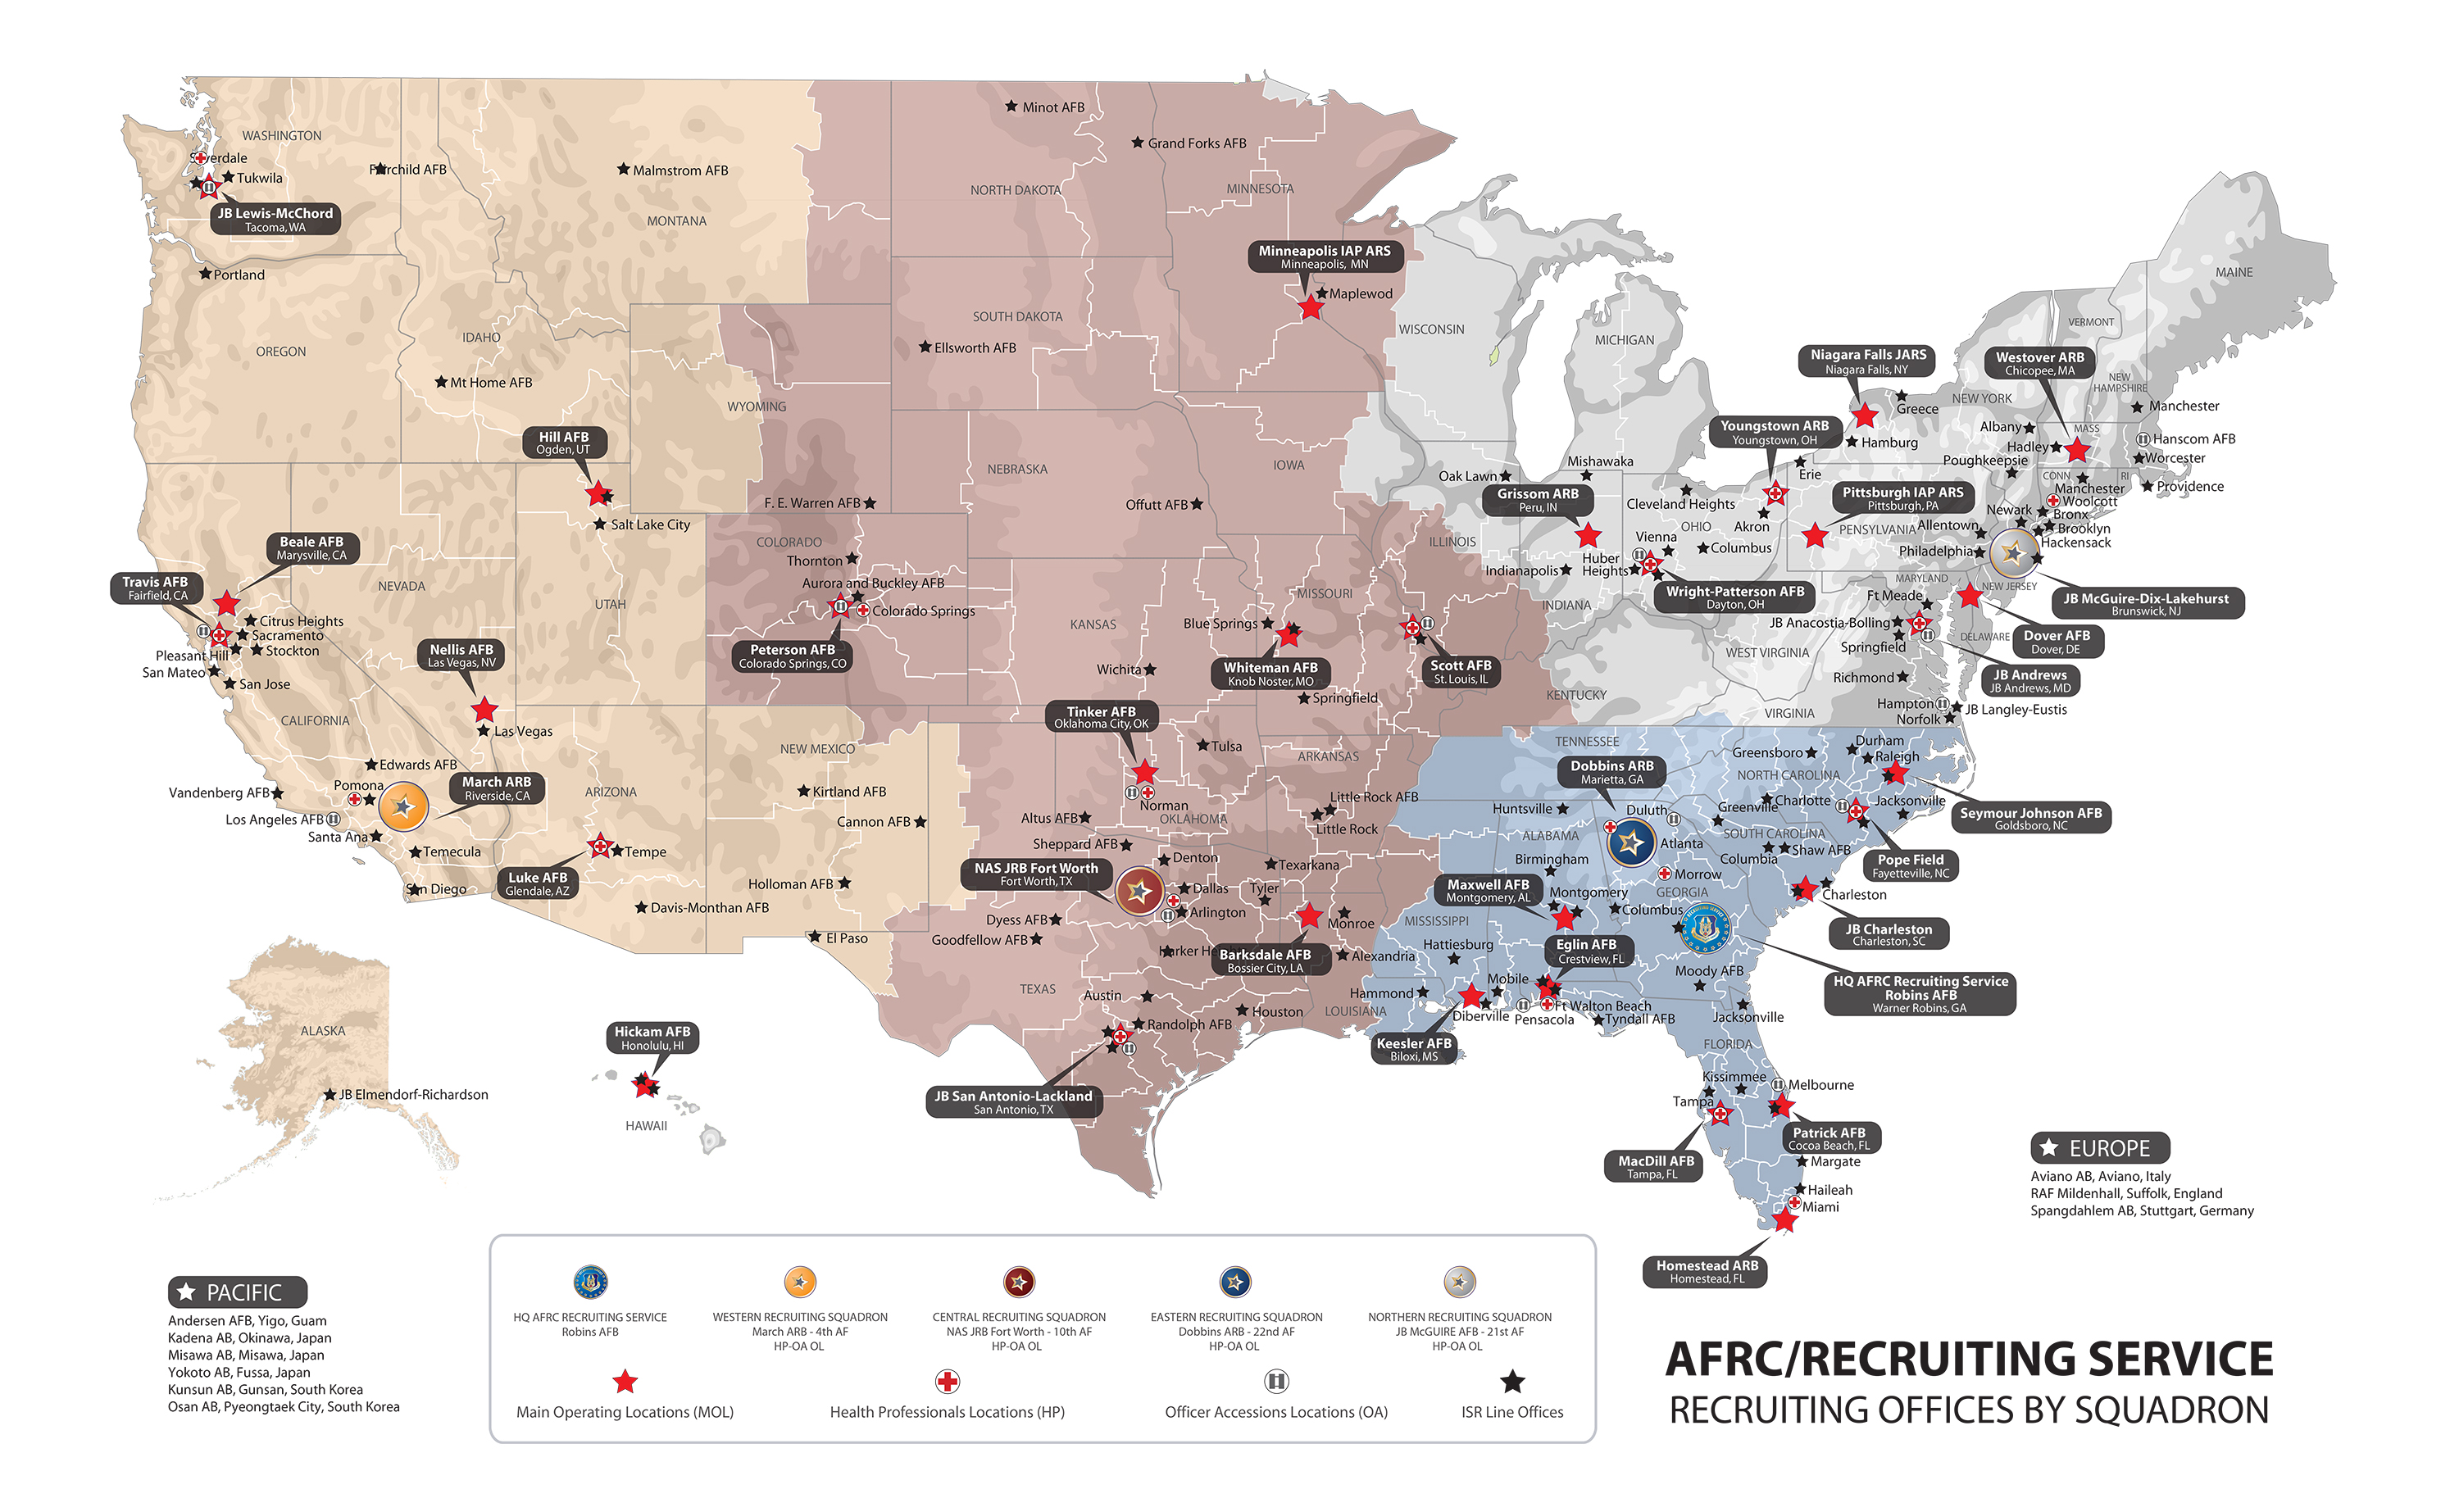 About Us - Us army recruiting map